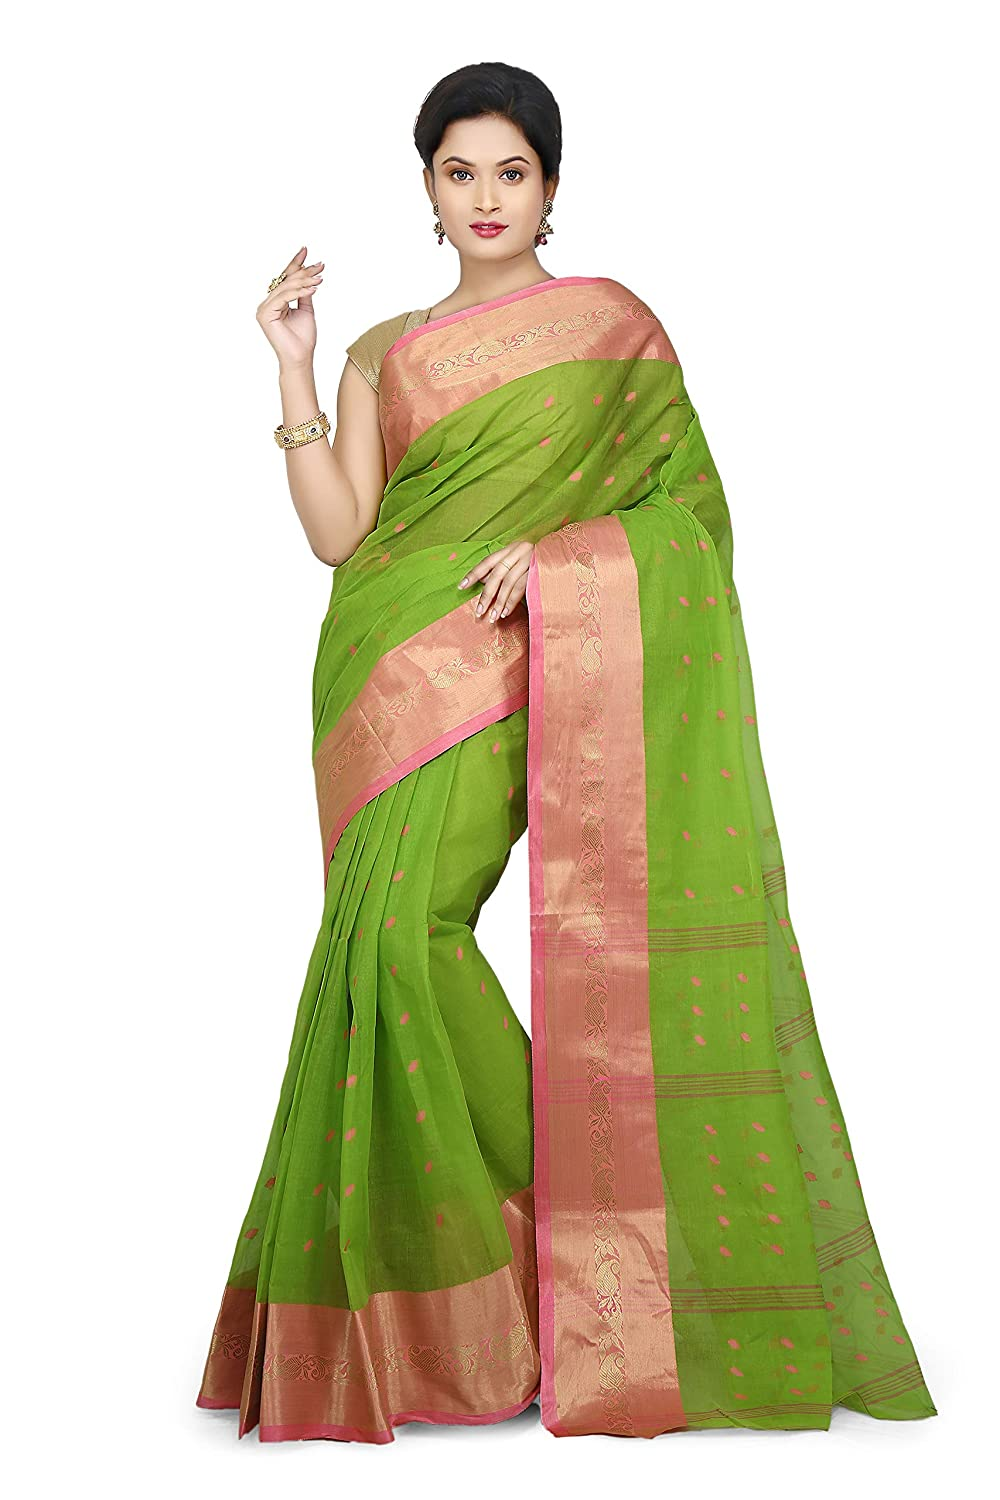 WoodenTant Women's Pure Cotton Green Colour Tant Saree